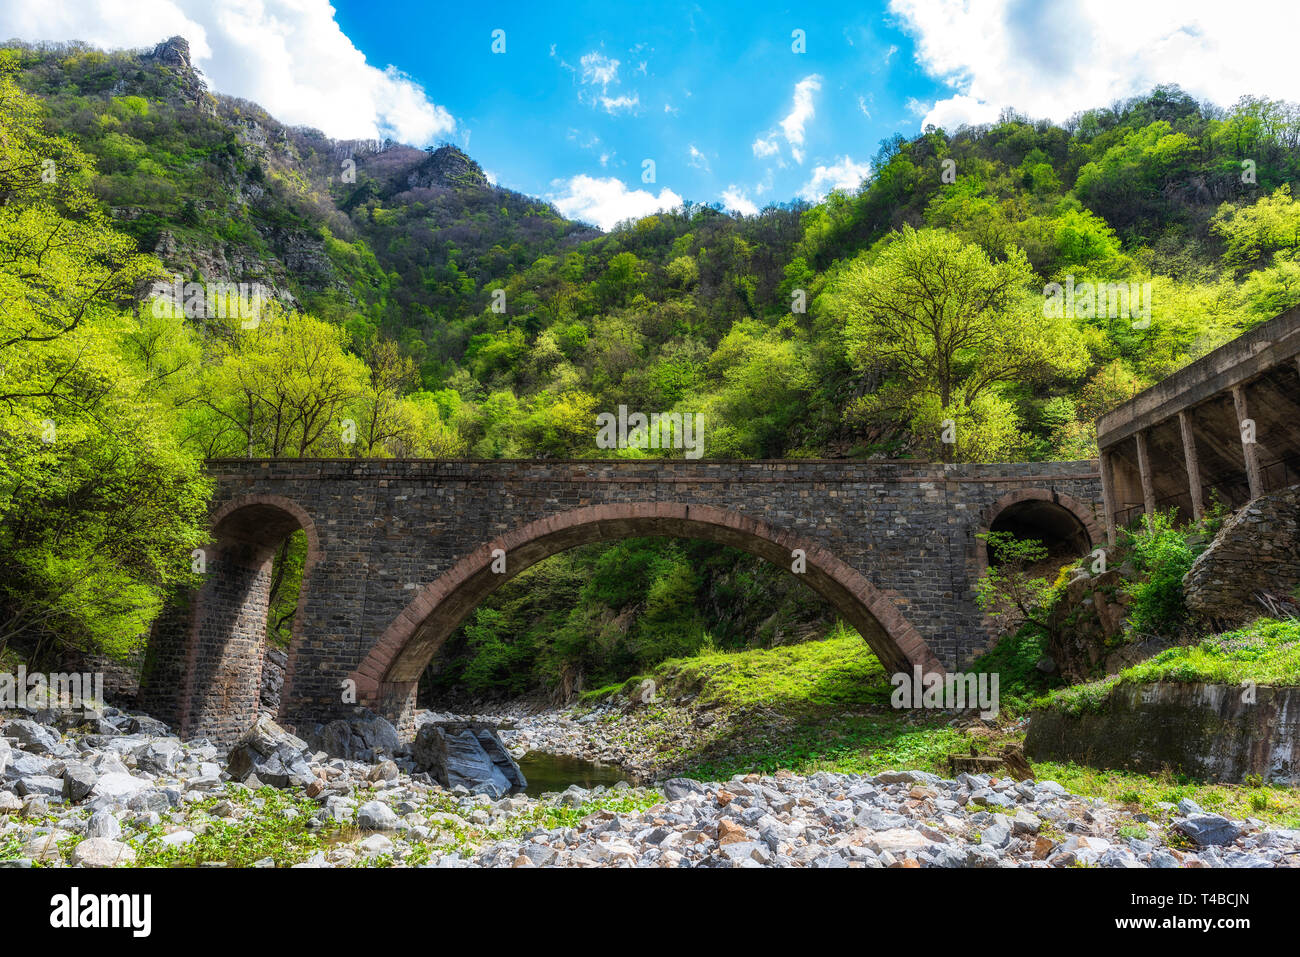 Stone bridge over small mountain river, green forest in background Stock Photo